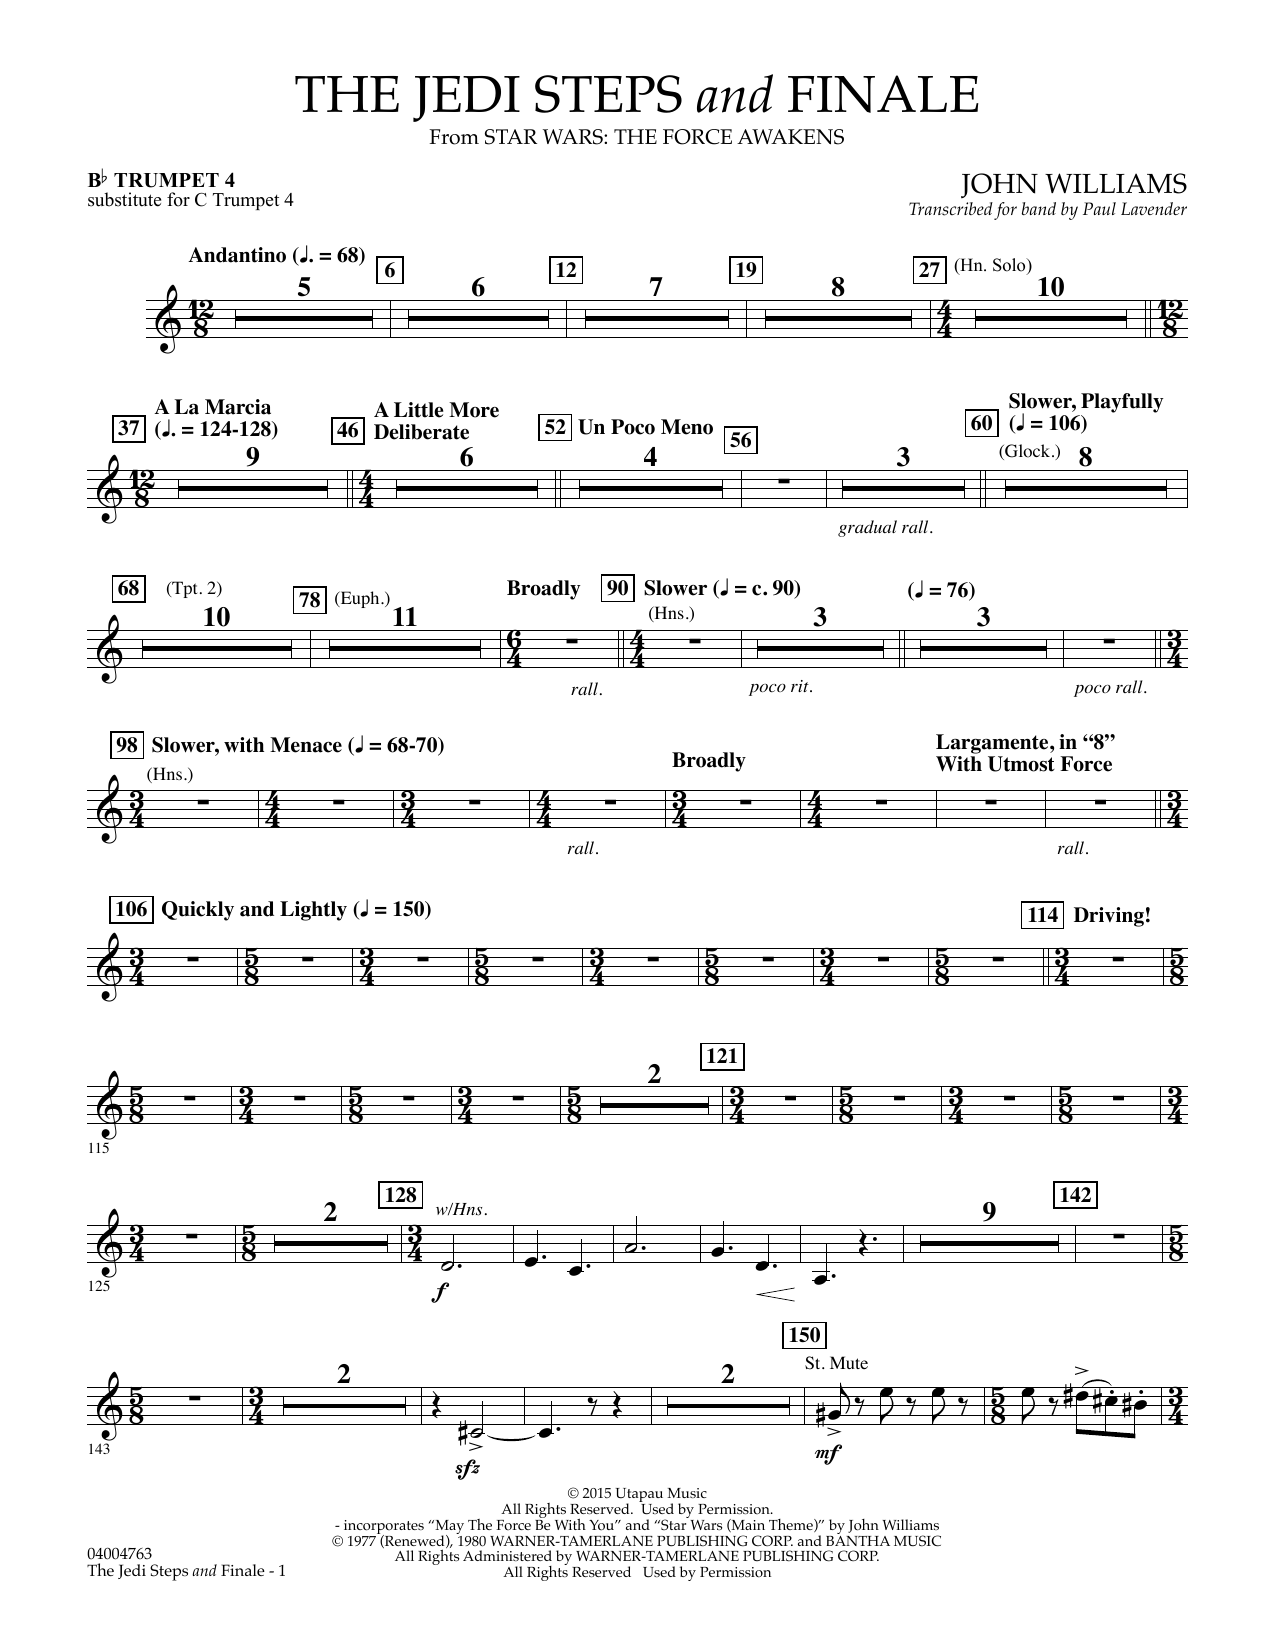 John Williams The Jedi Steps and Finale (from Star Wars: The Force Awakens) - Bb Trumpet 4 (sub. C Tpt. 4) sheet music preview music notes and score for Concert Band including 2 page(s)